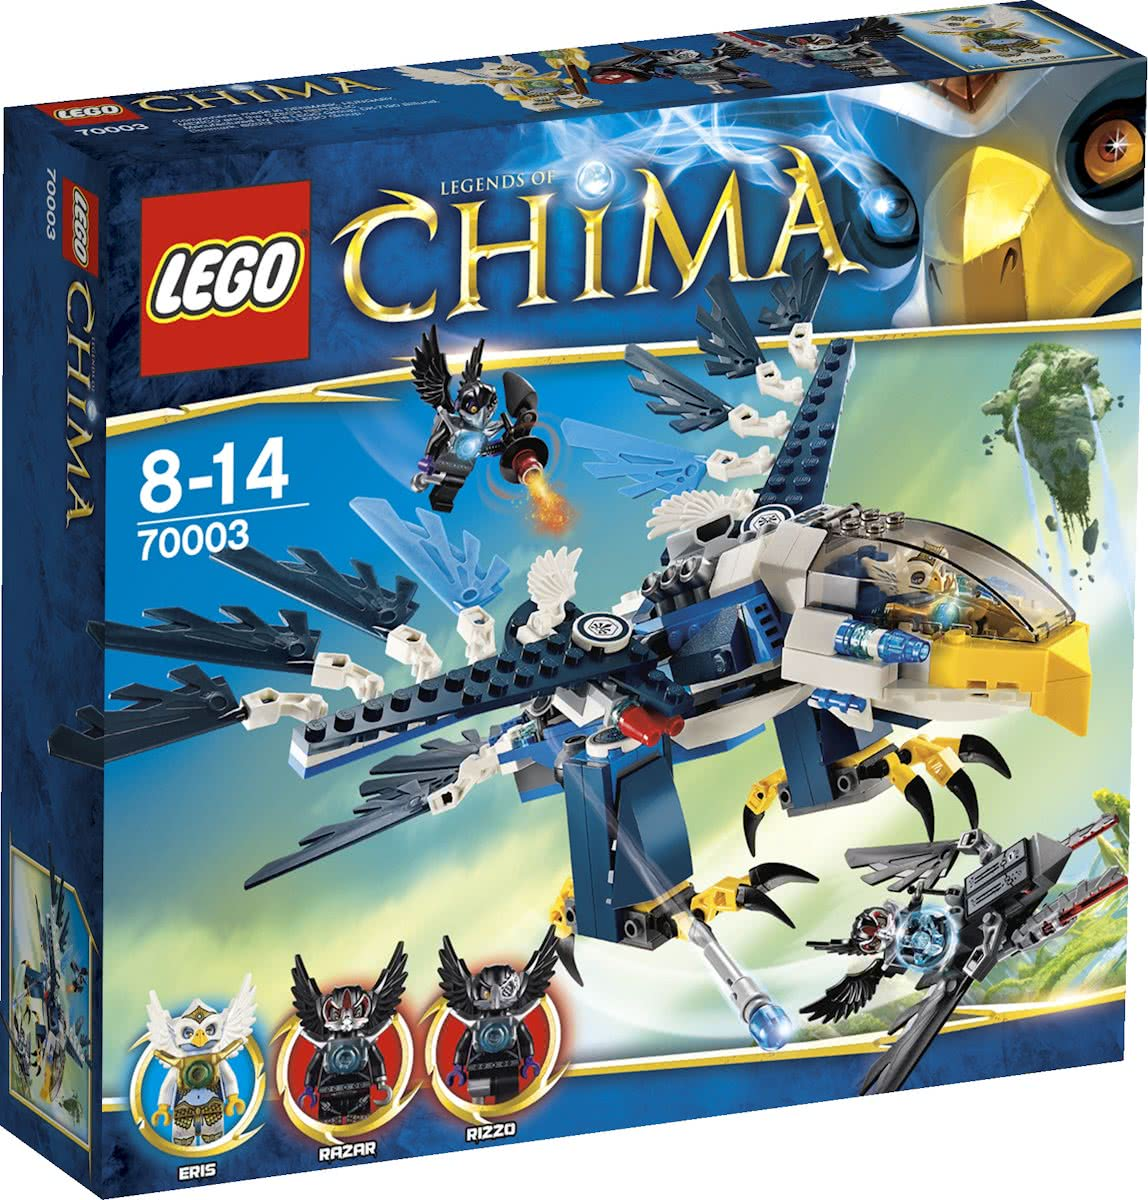 LEGO Chima Eris Eagle Interceptor - 70003